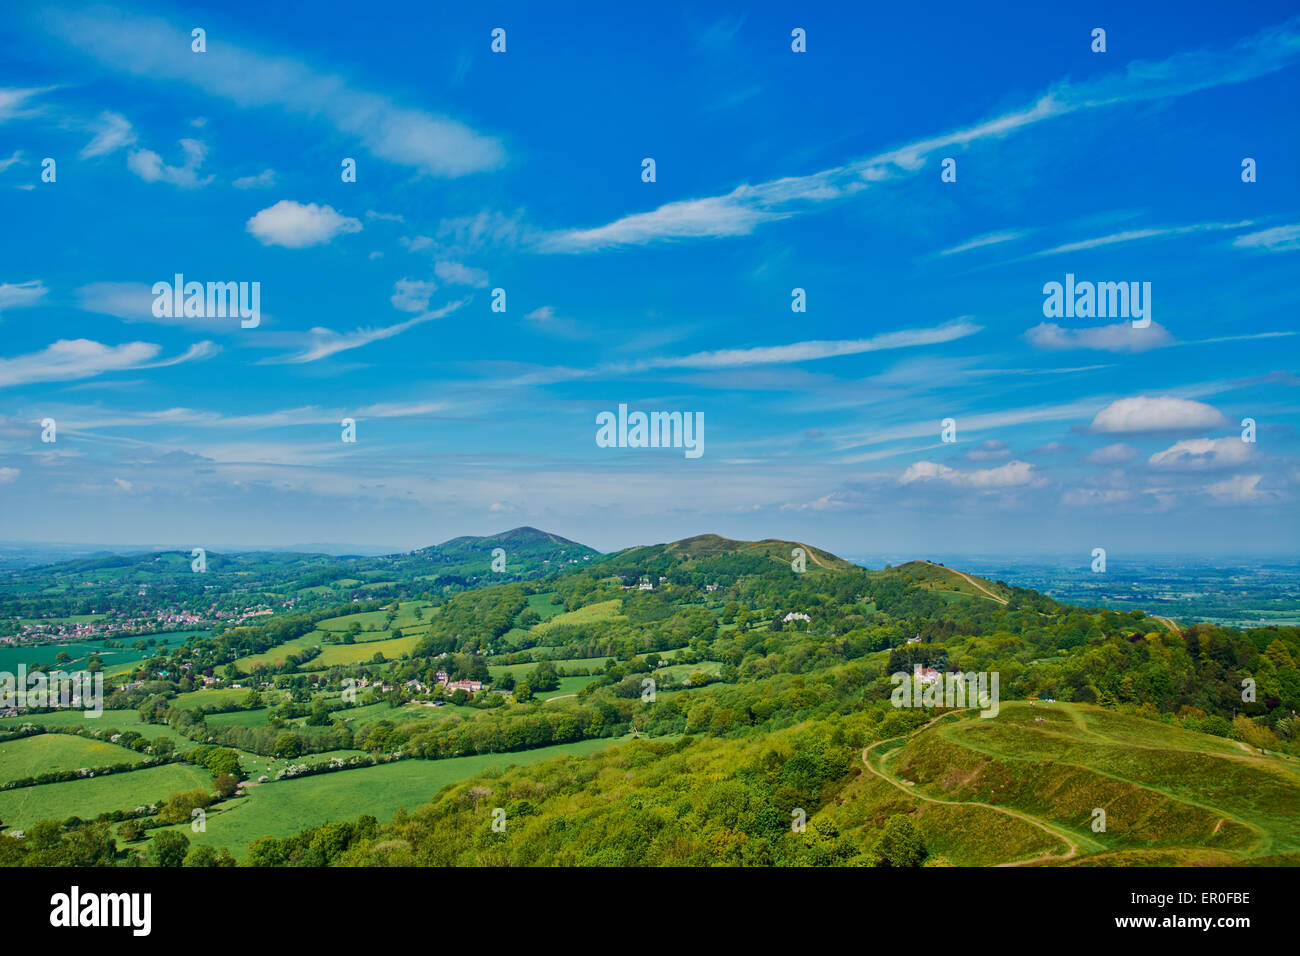 Scenes from Malvern Hills in Worcestershire, UK - Stock Image